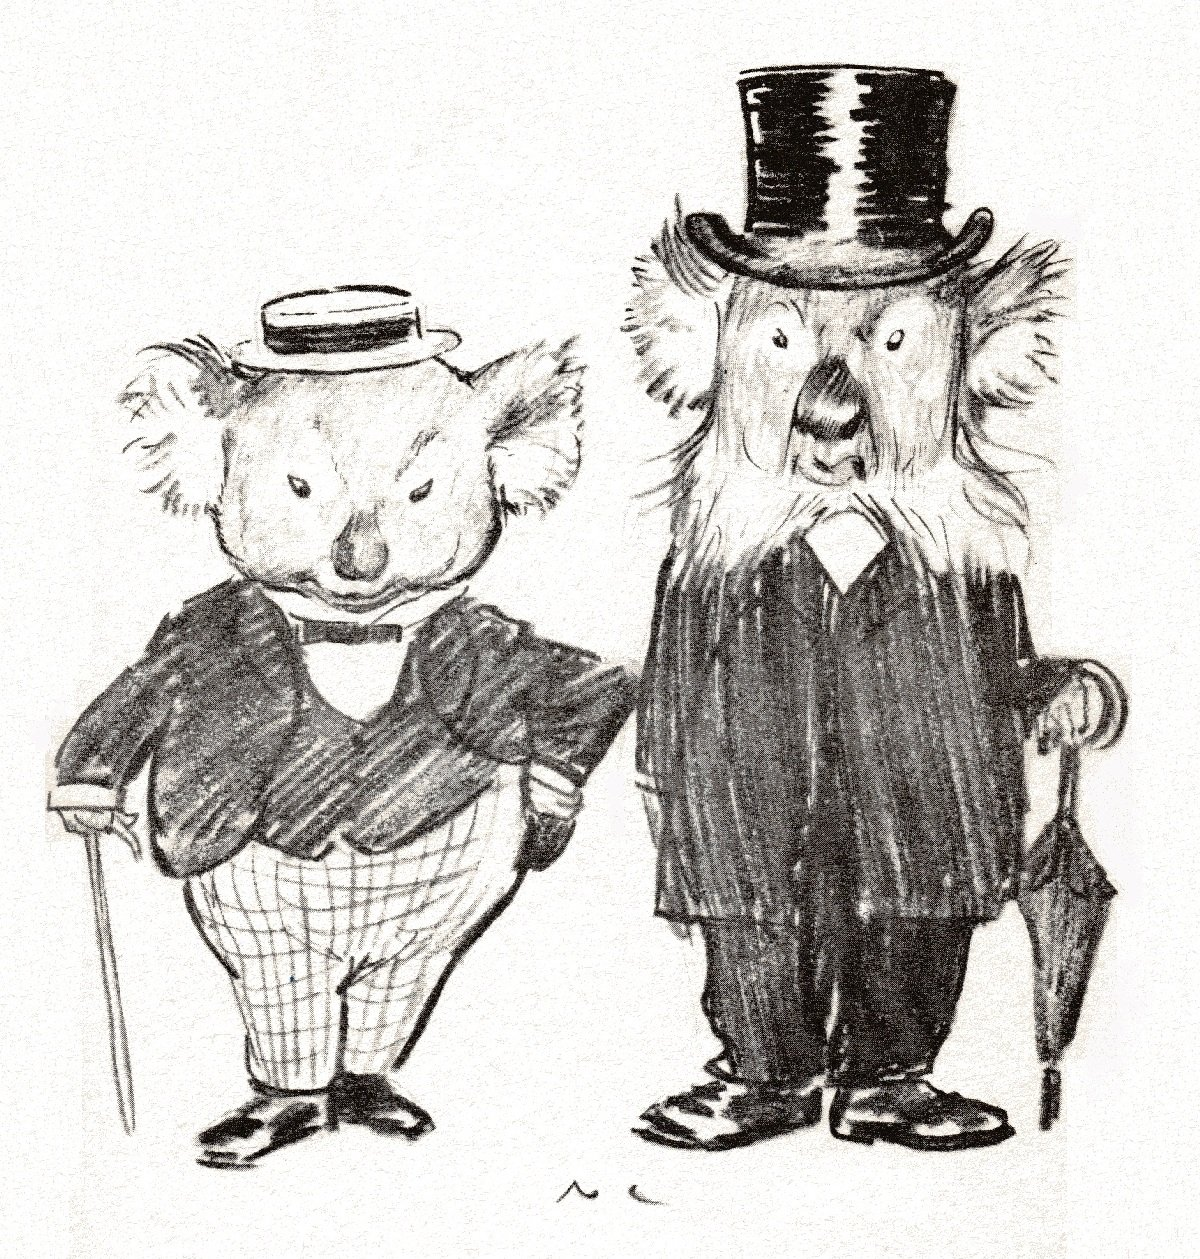 2 anthropomorphic cartoon koala bears dressed in suits